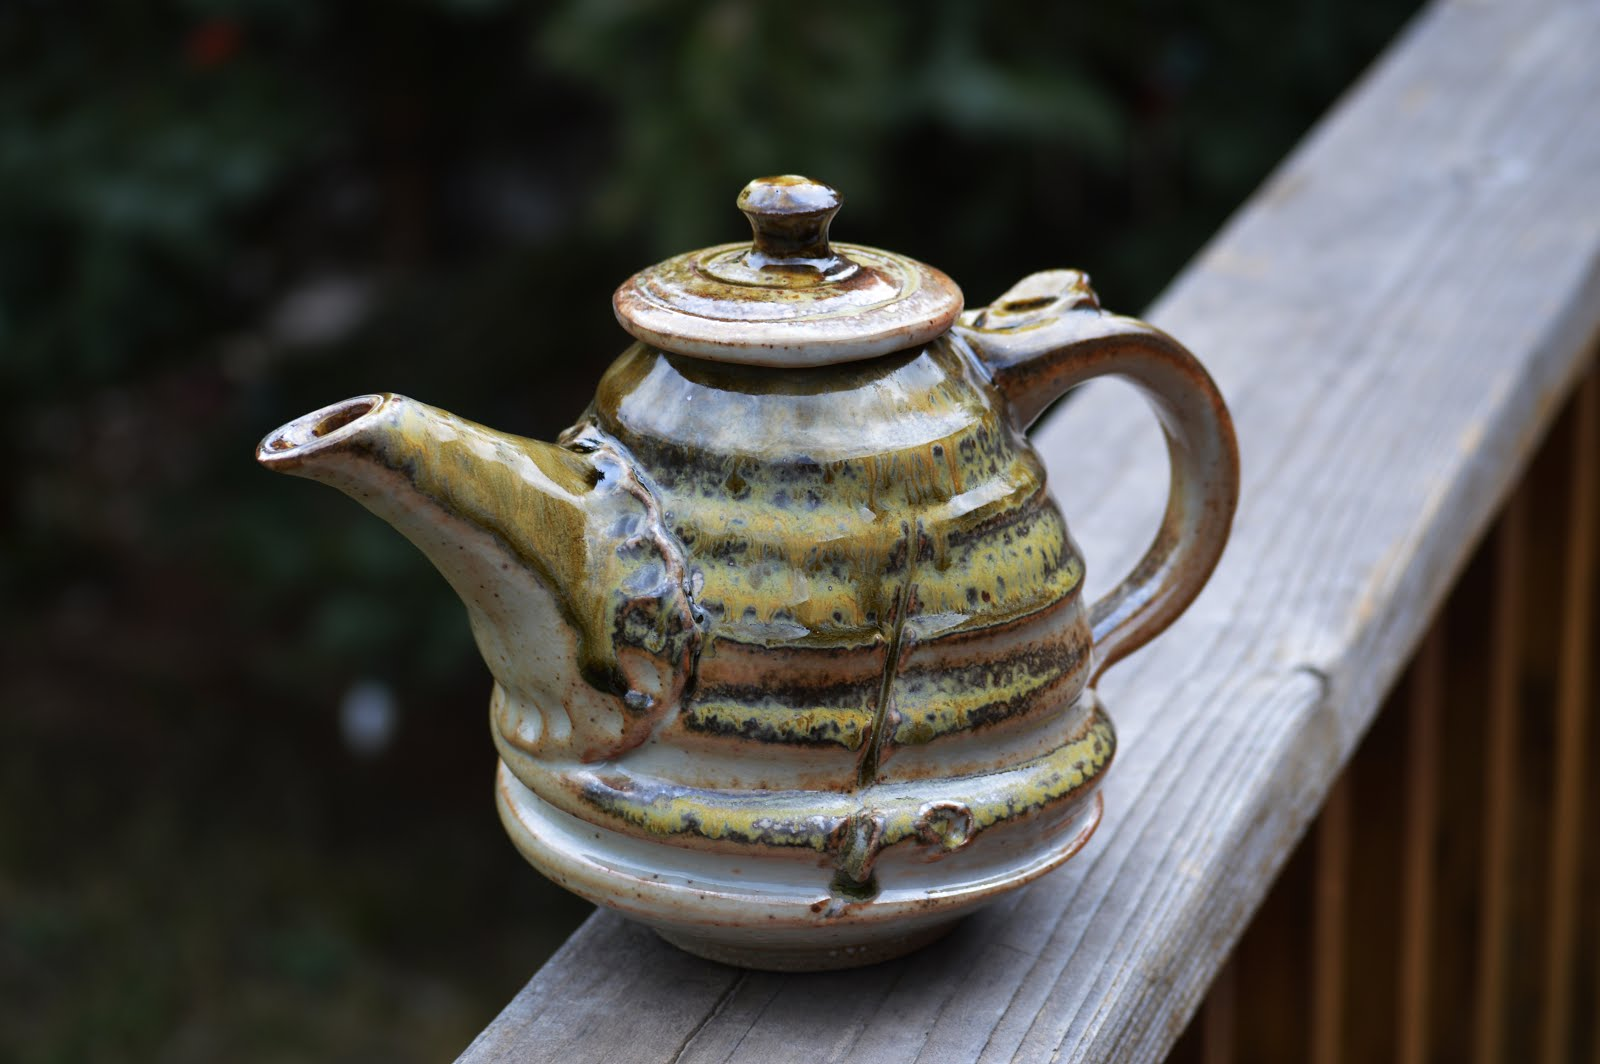 Beautiful Handmade teapot with Sheno glaze and Ash!